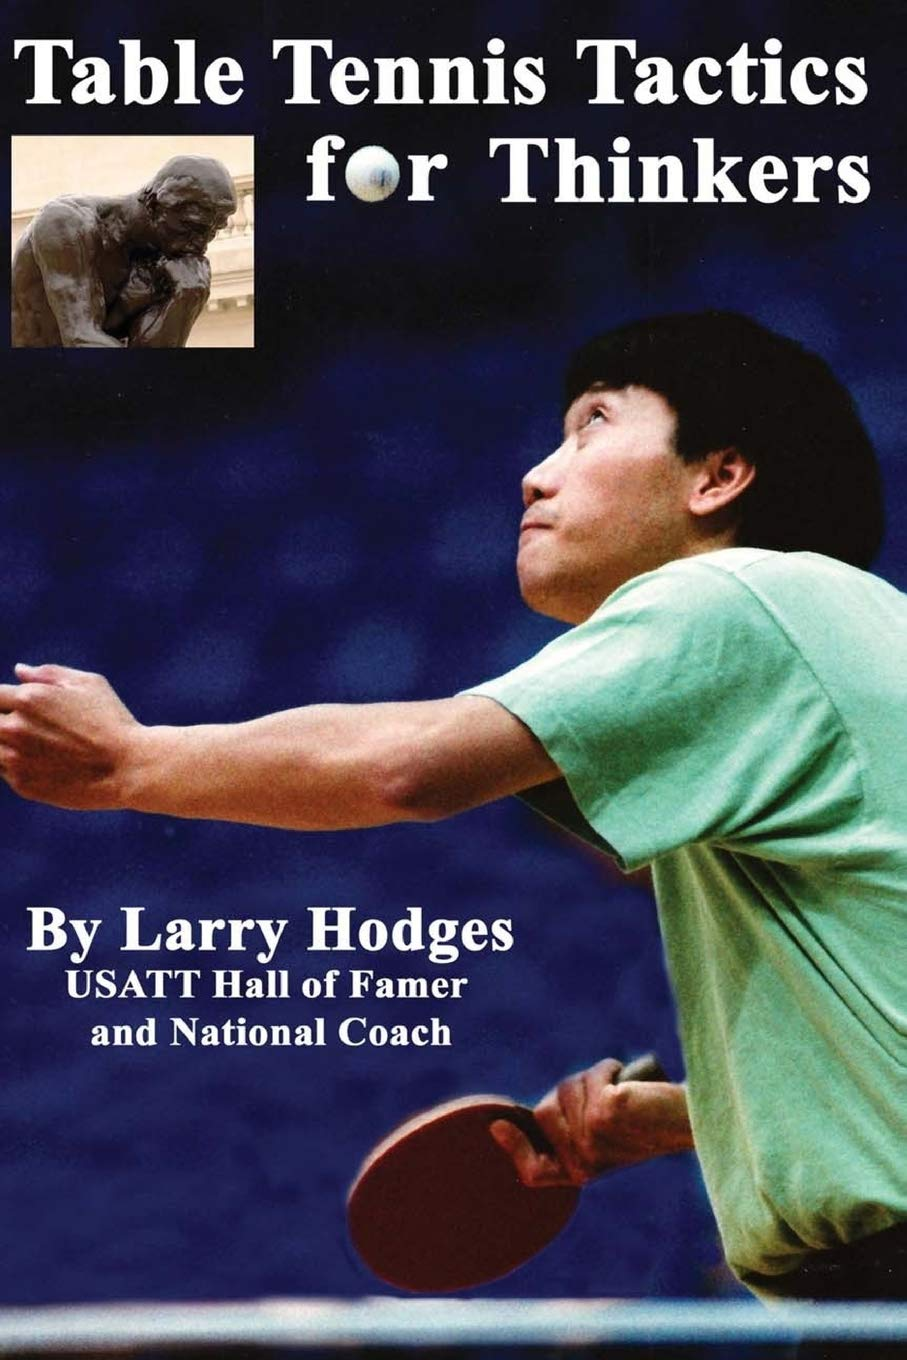 Download Table Tennis Tactics For Thinkers 